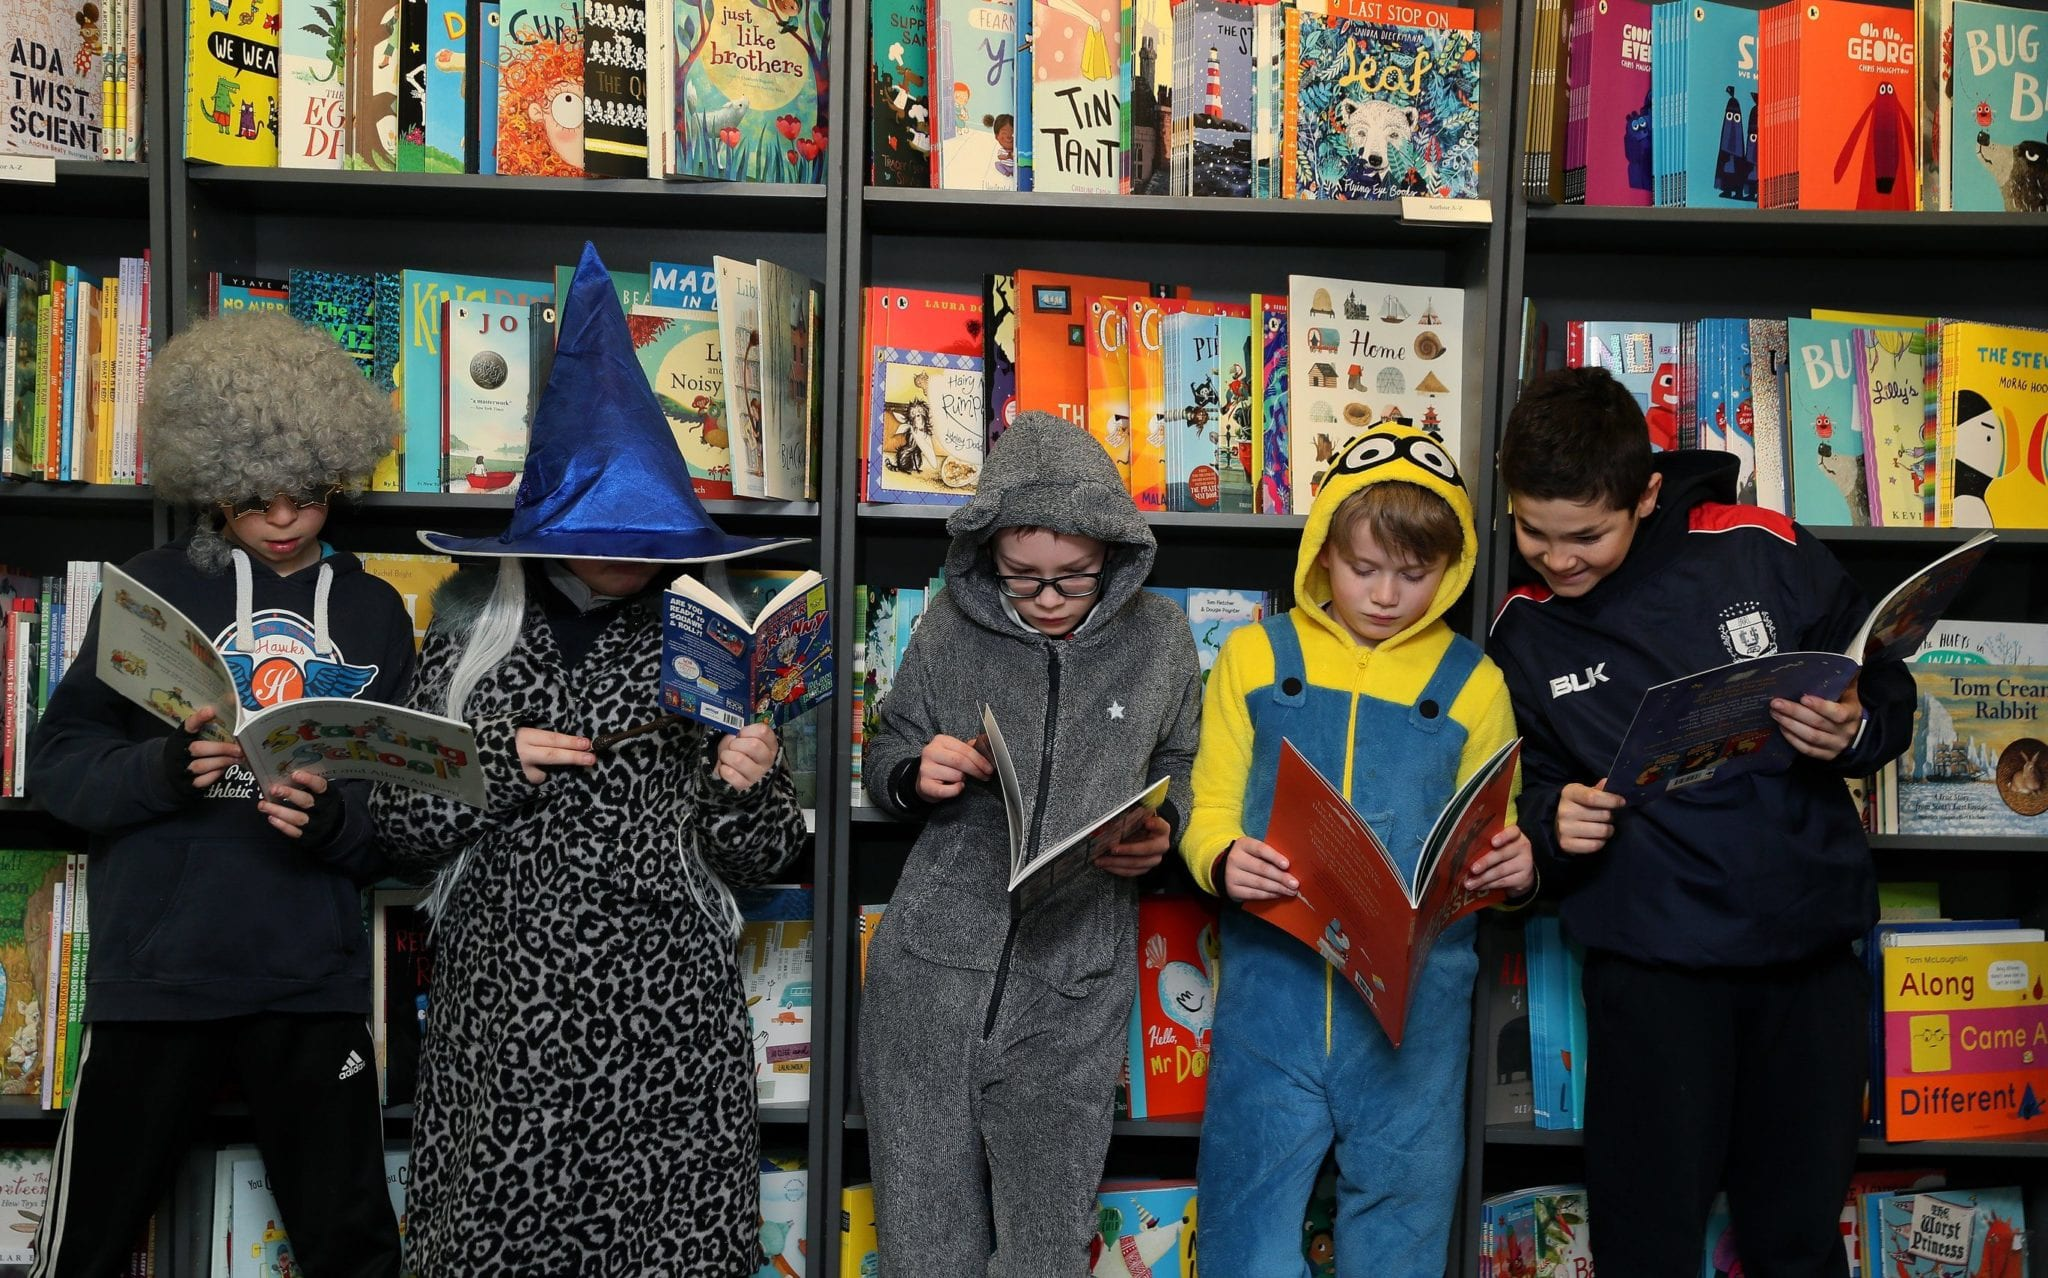 Polyester Harry Potters and empty bookshops: how World Book Day lost the plot